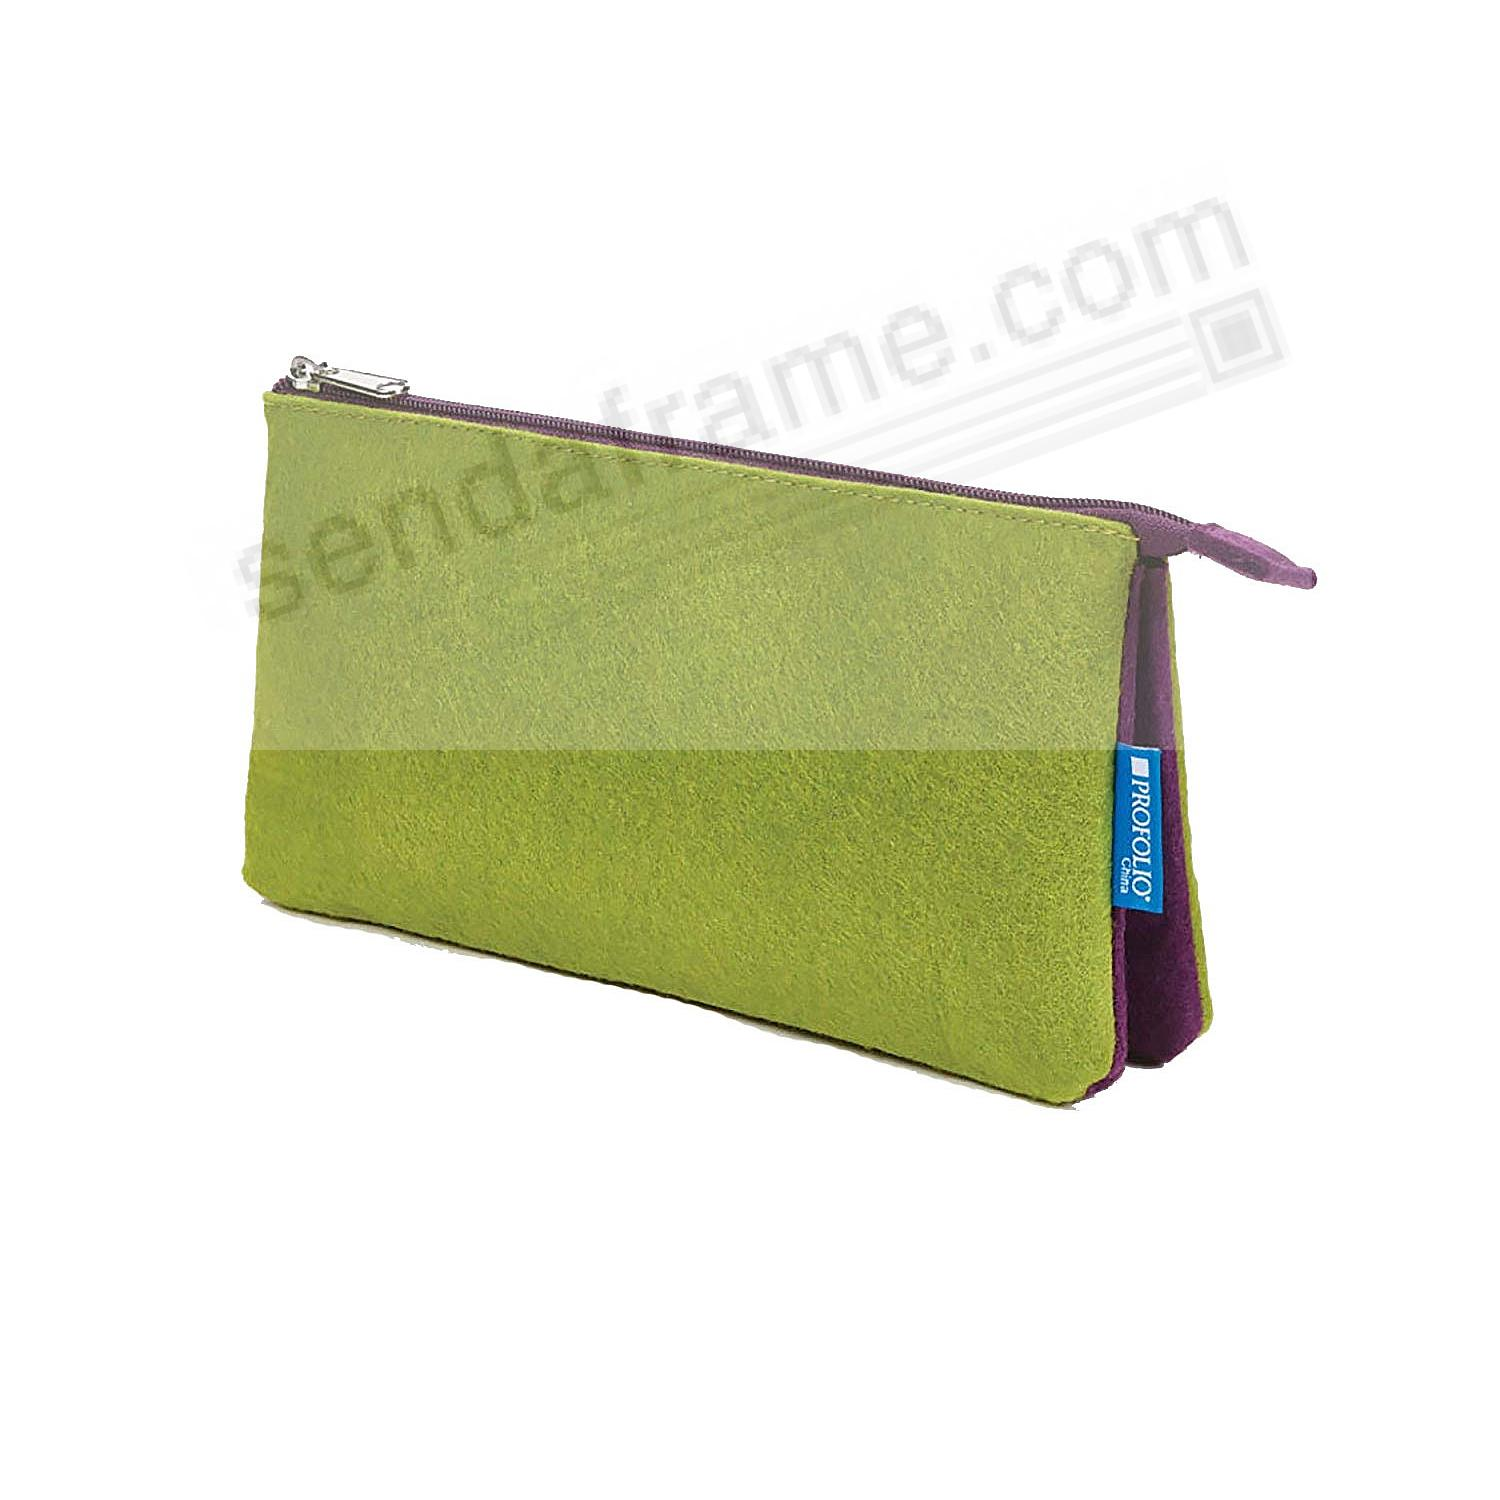 The NEW PROFOLIO MIDTOWN POUCH by Itoya - GREEN/Purple (4x7-Medum)